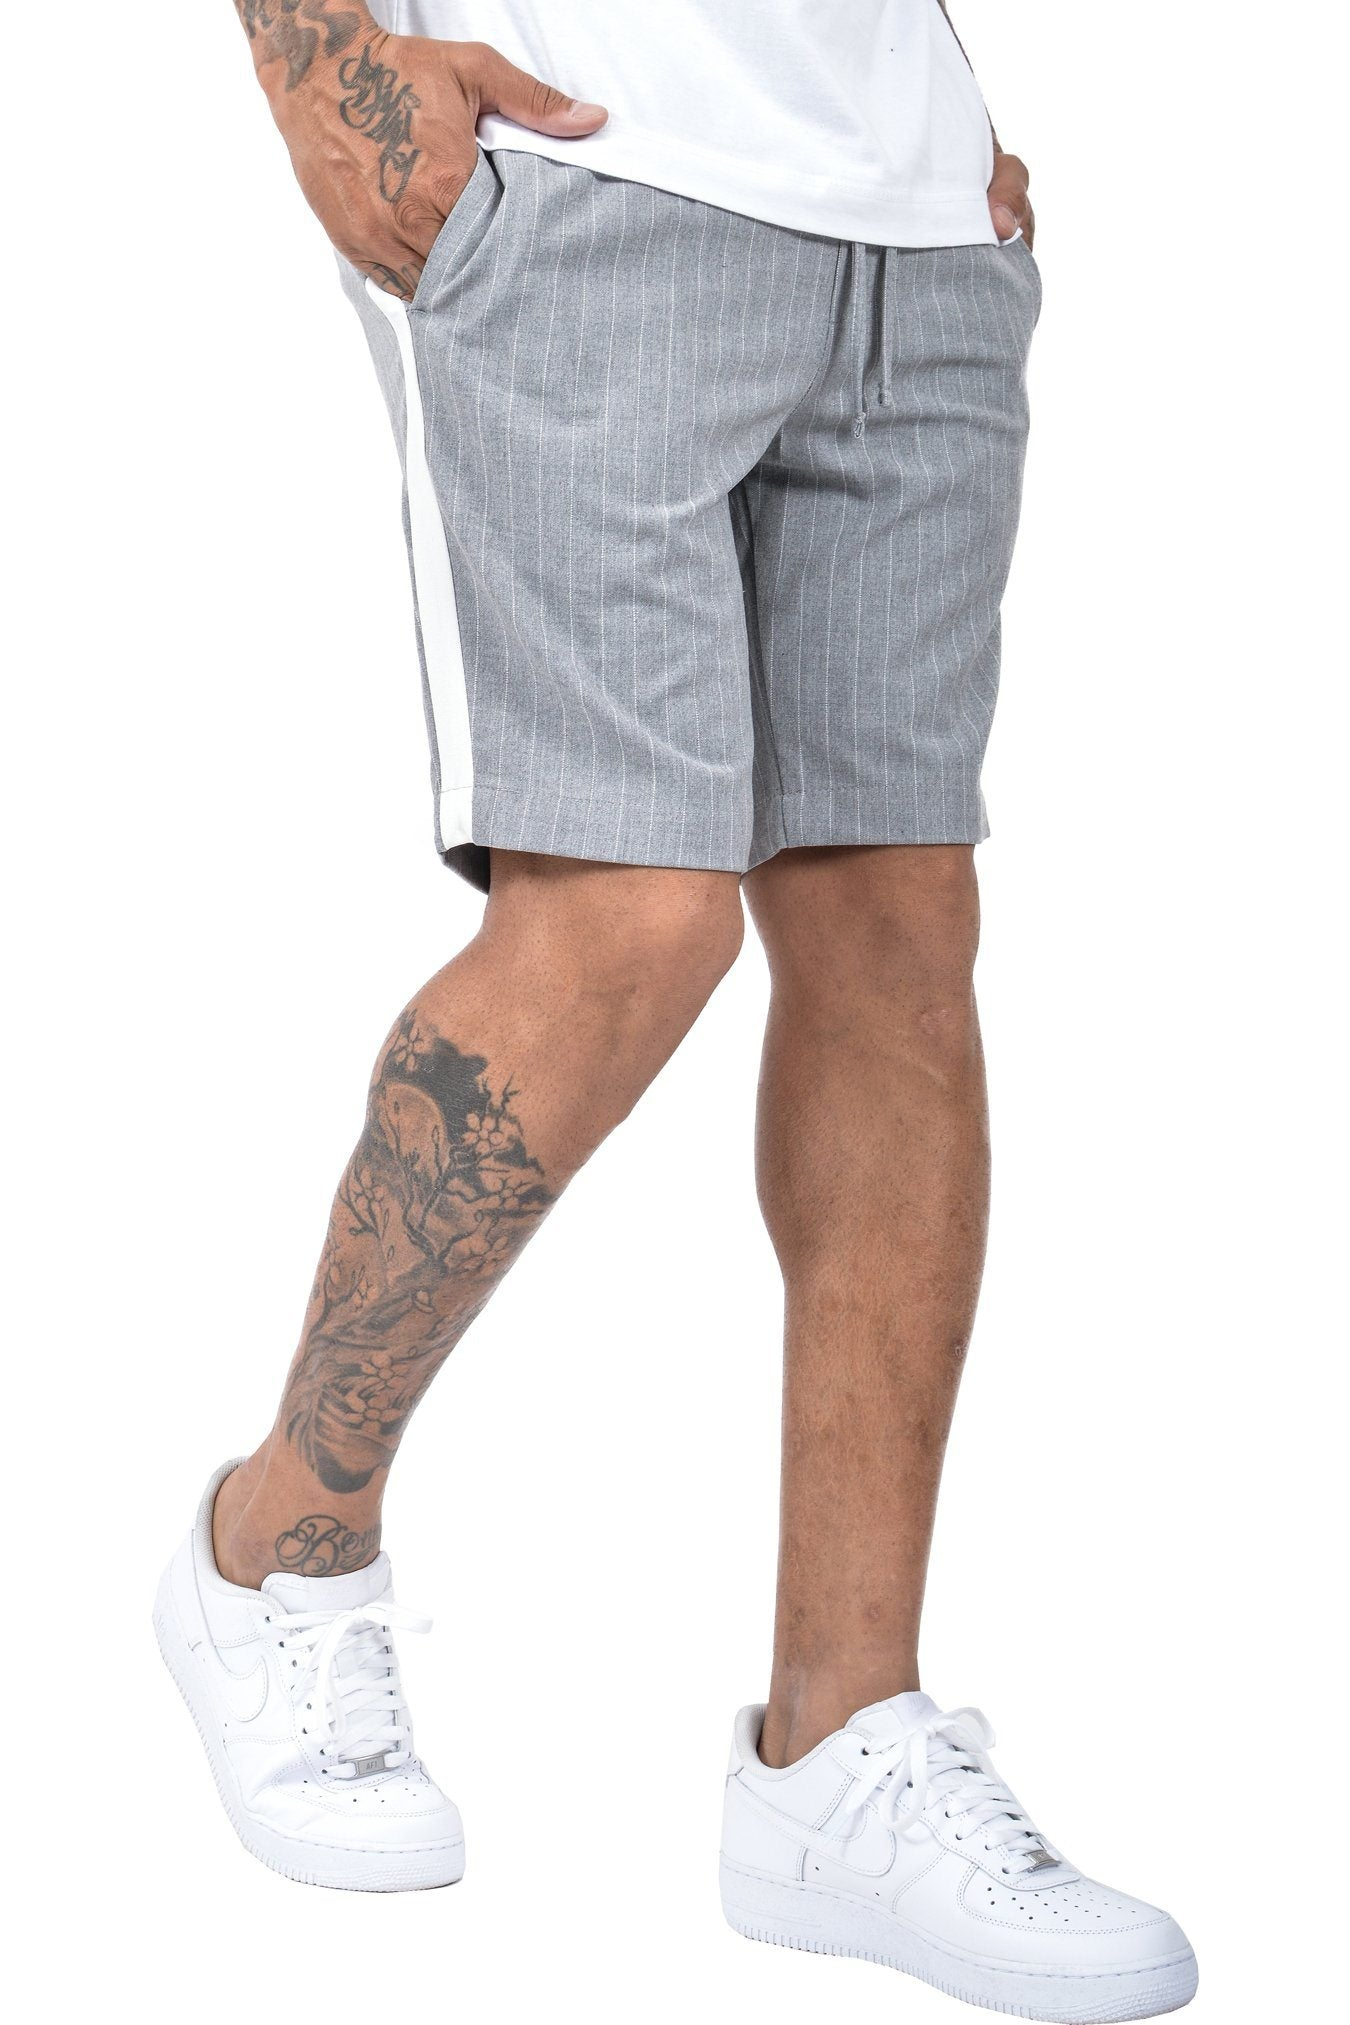 Granada Pinstripe Shorts Grey White